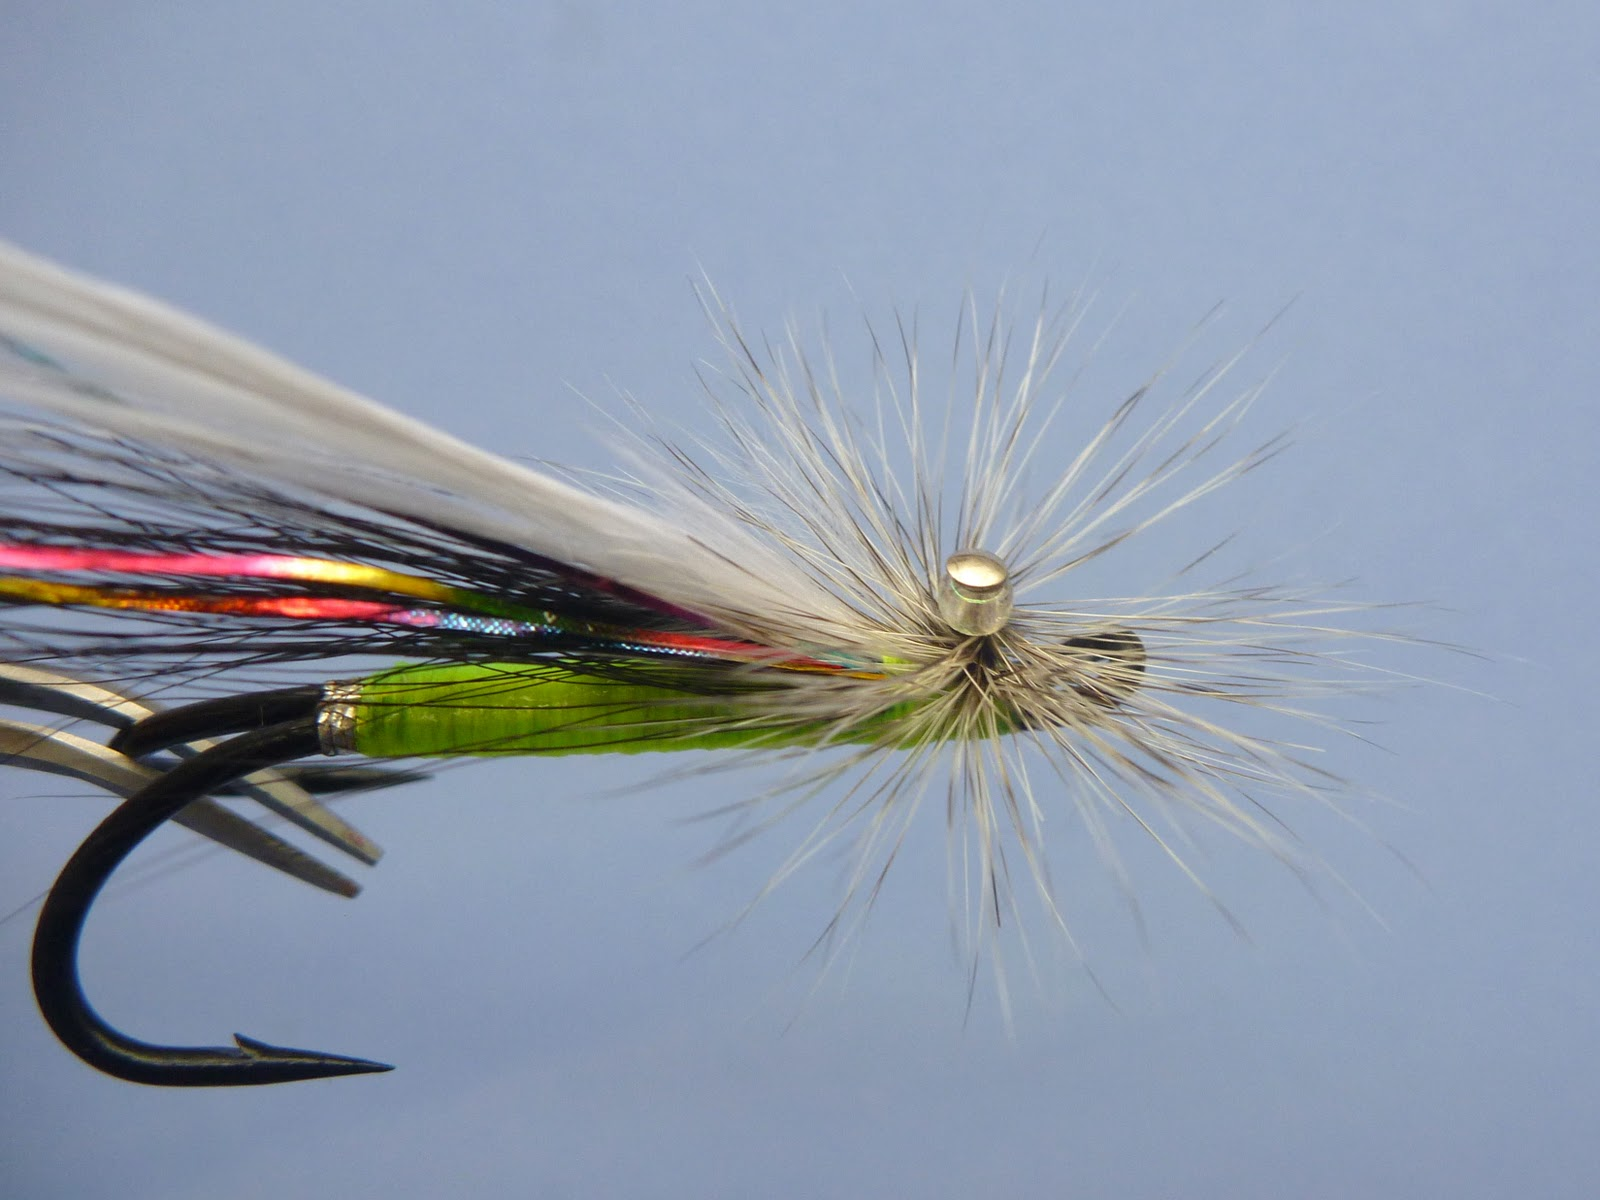 Atlantic salmon flies ghost stone fly 2 double for Salon fly